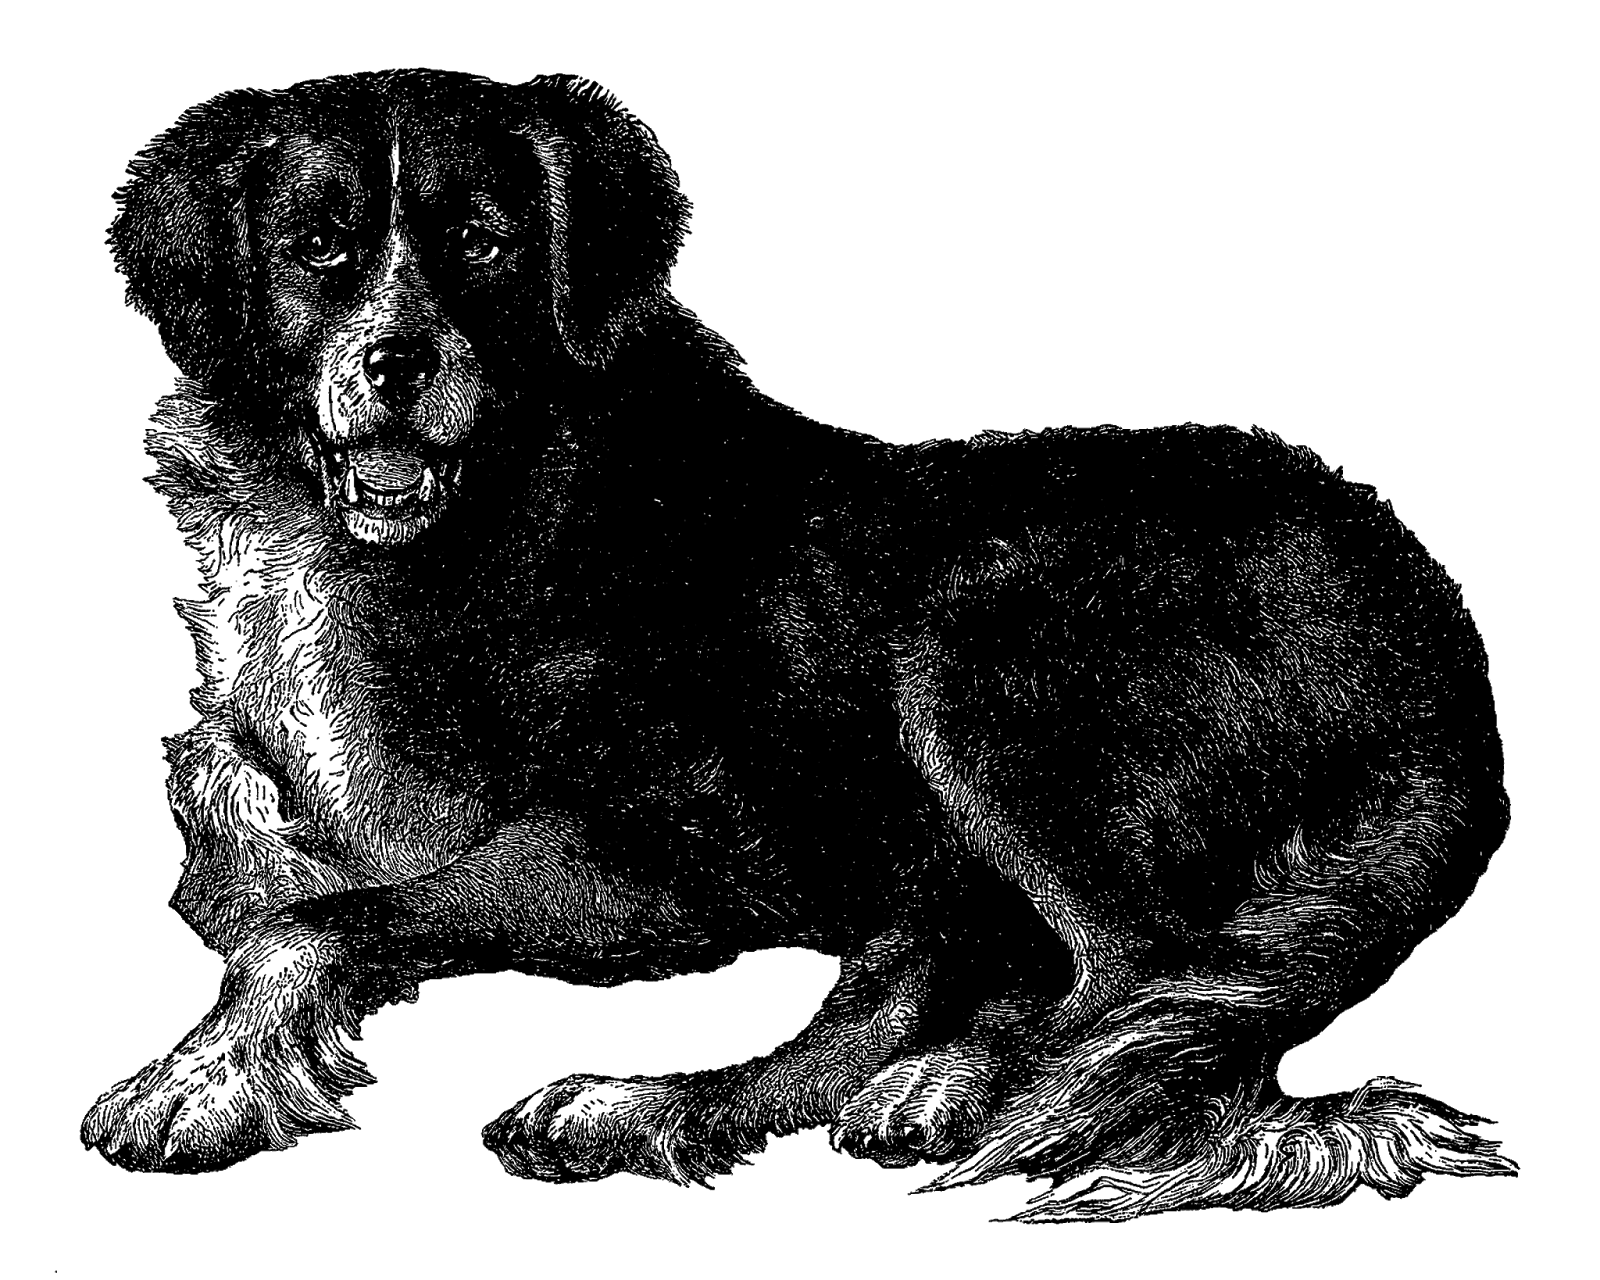 Dog clipart royalty free banner library newfoundland dog clipart free - Clipground banner library